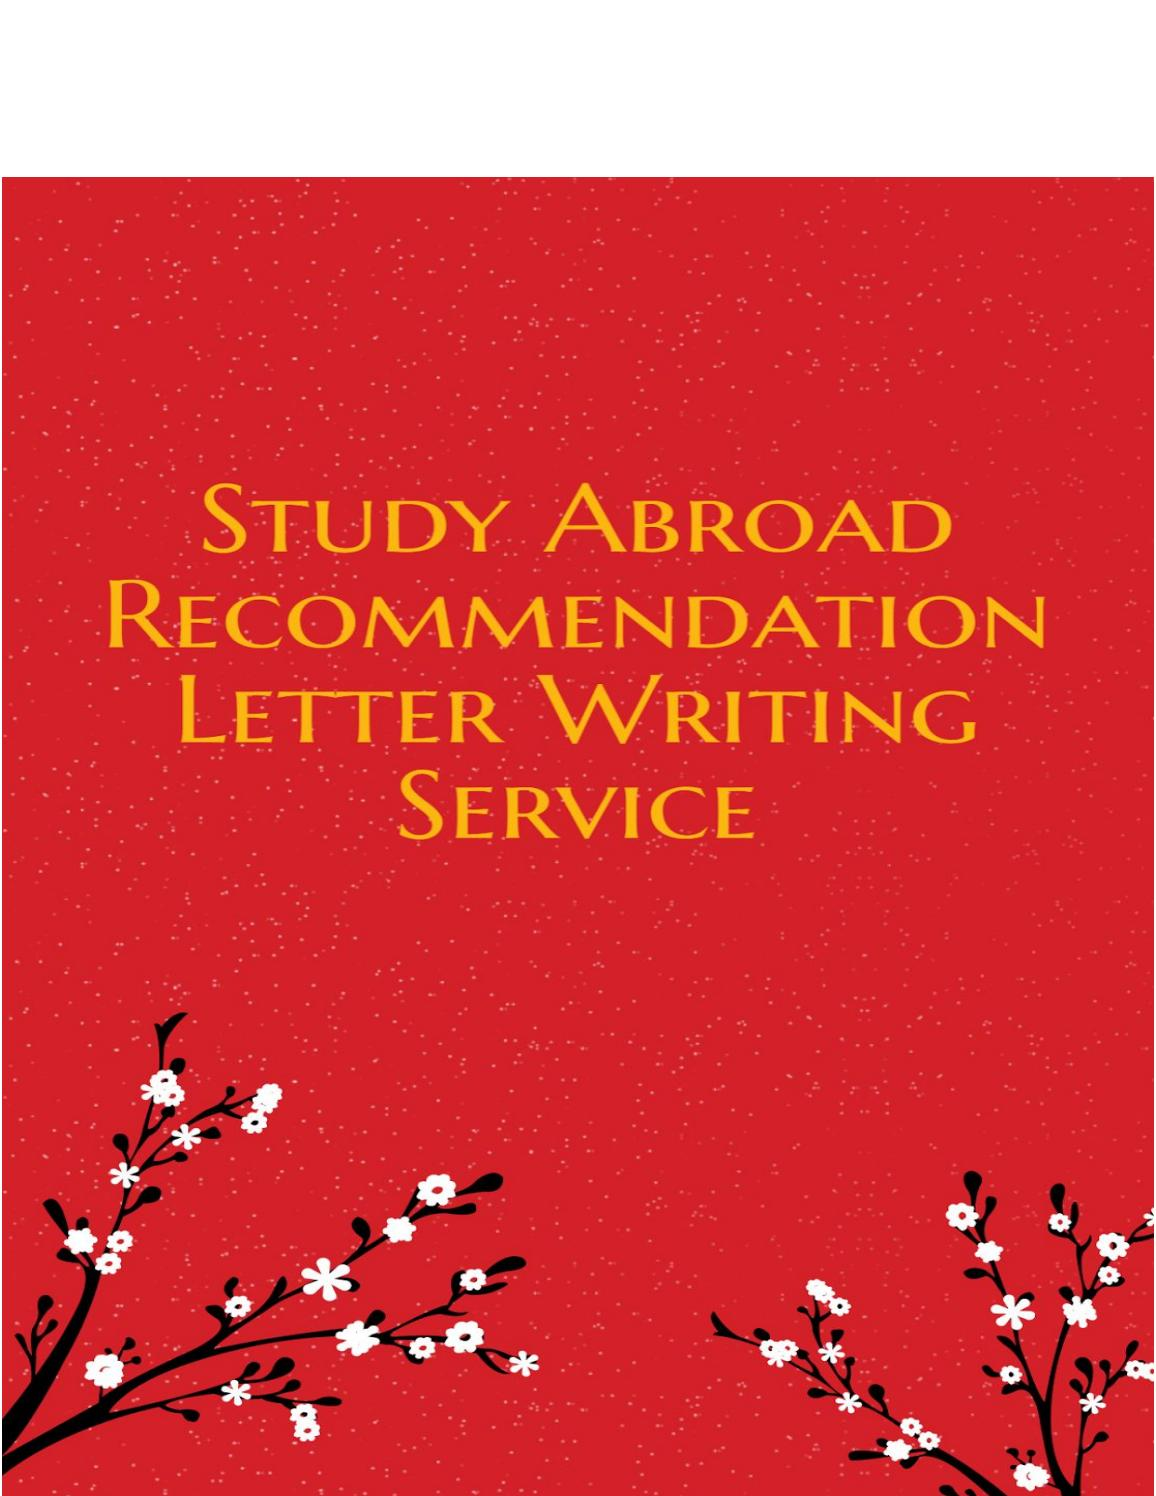 study abroad recommendation letter writing service by